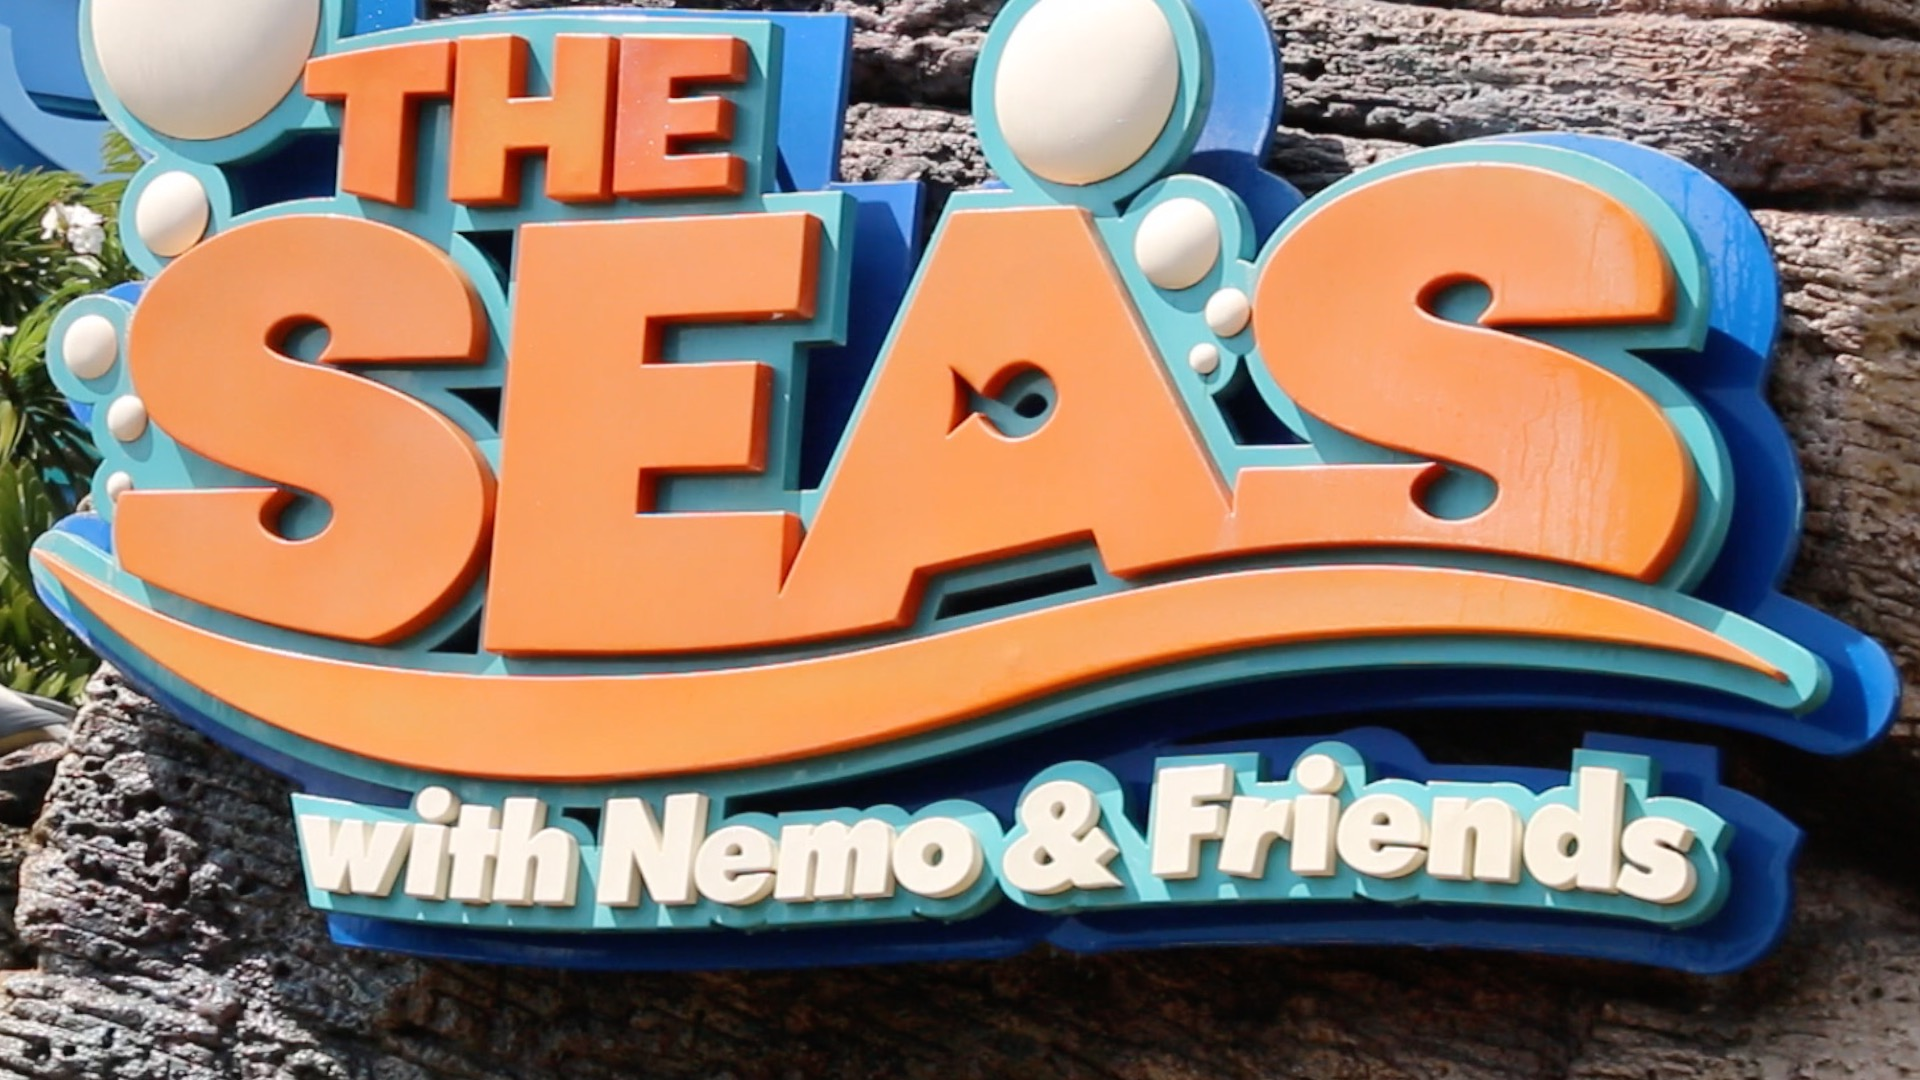 the-seas-with-nemo-friends-thumb-02